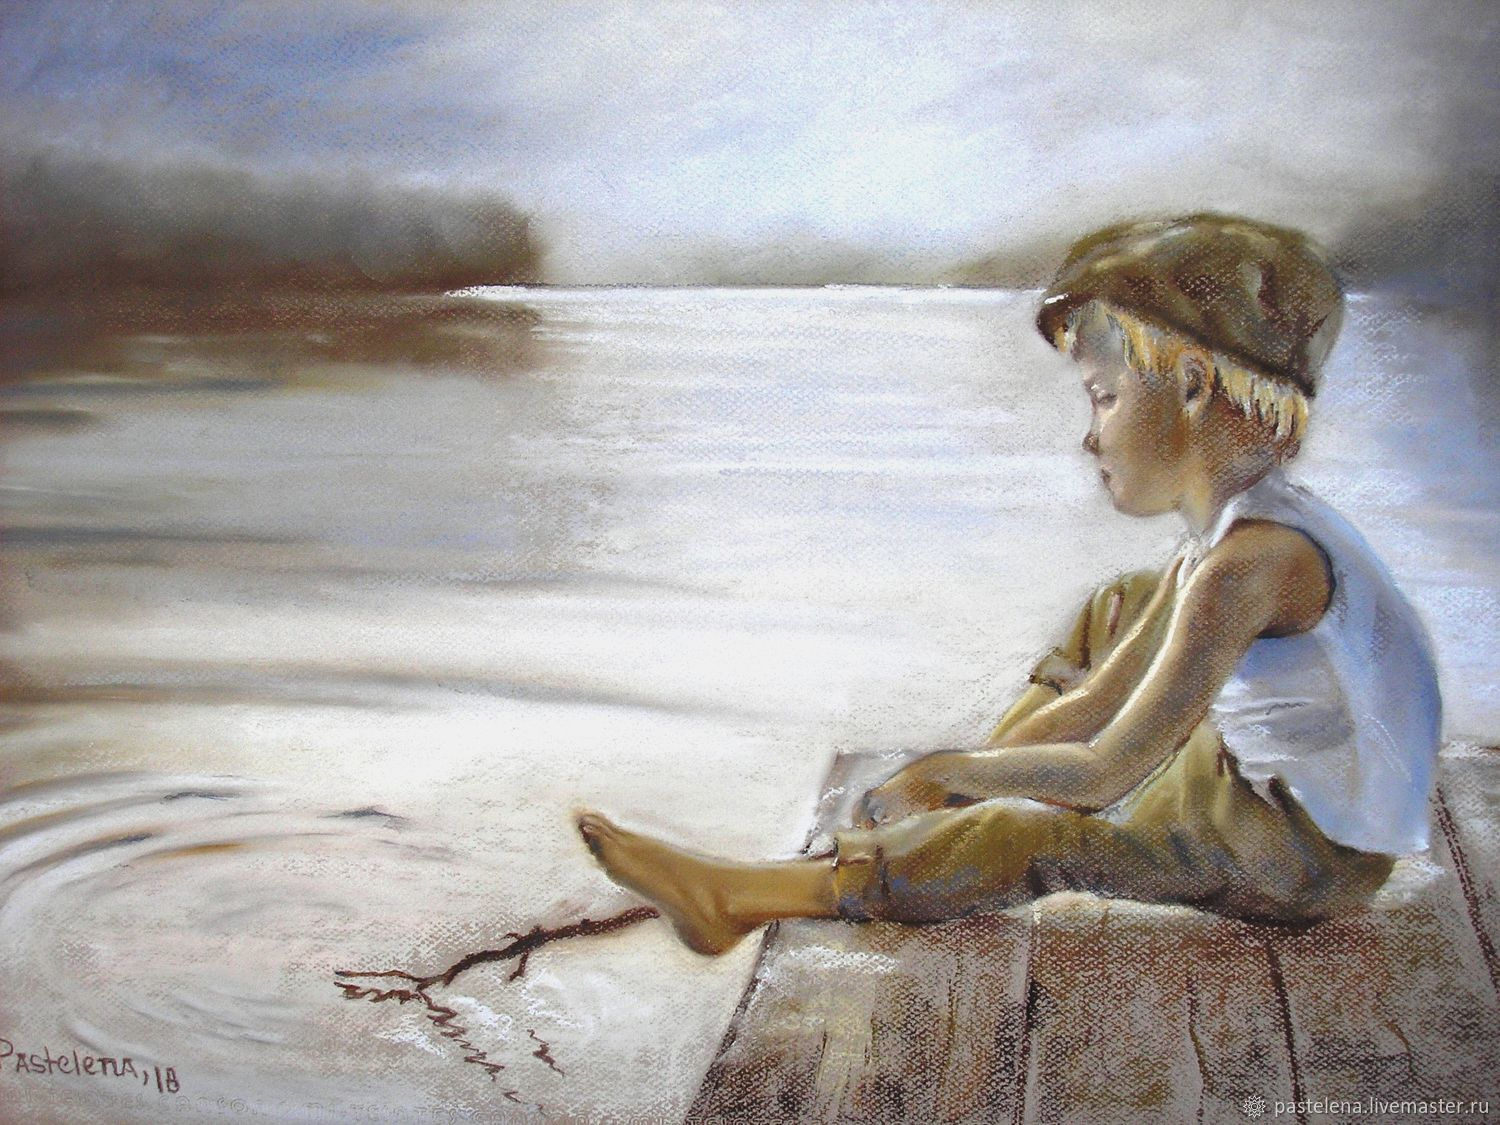 Silence painting pastel 50h65 cm (gray-brown lake boy), Pictures, ,  Фото №1